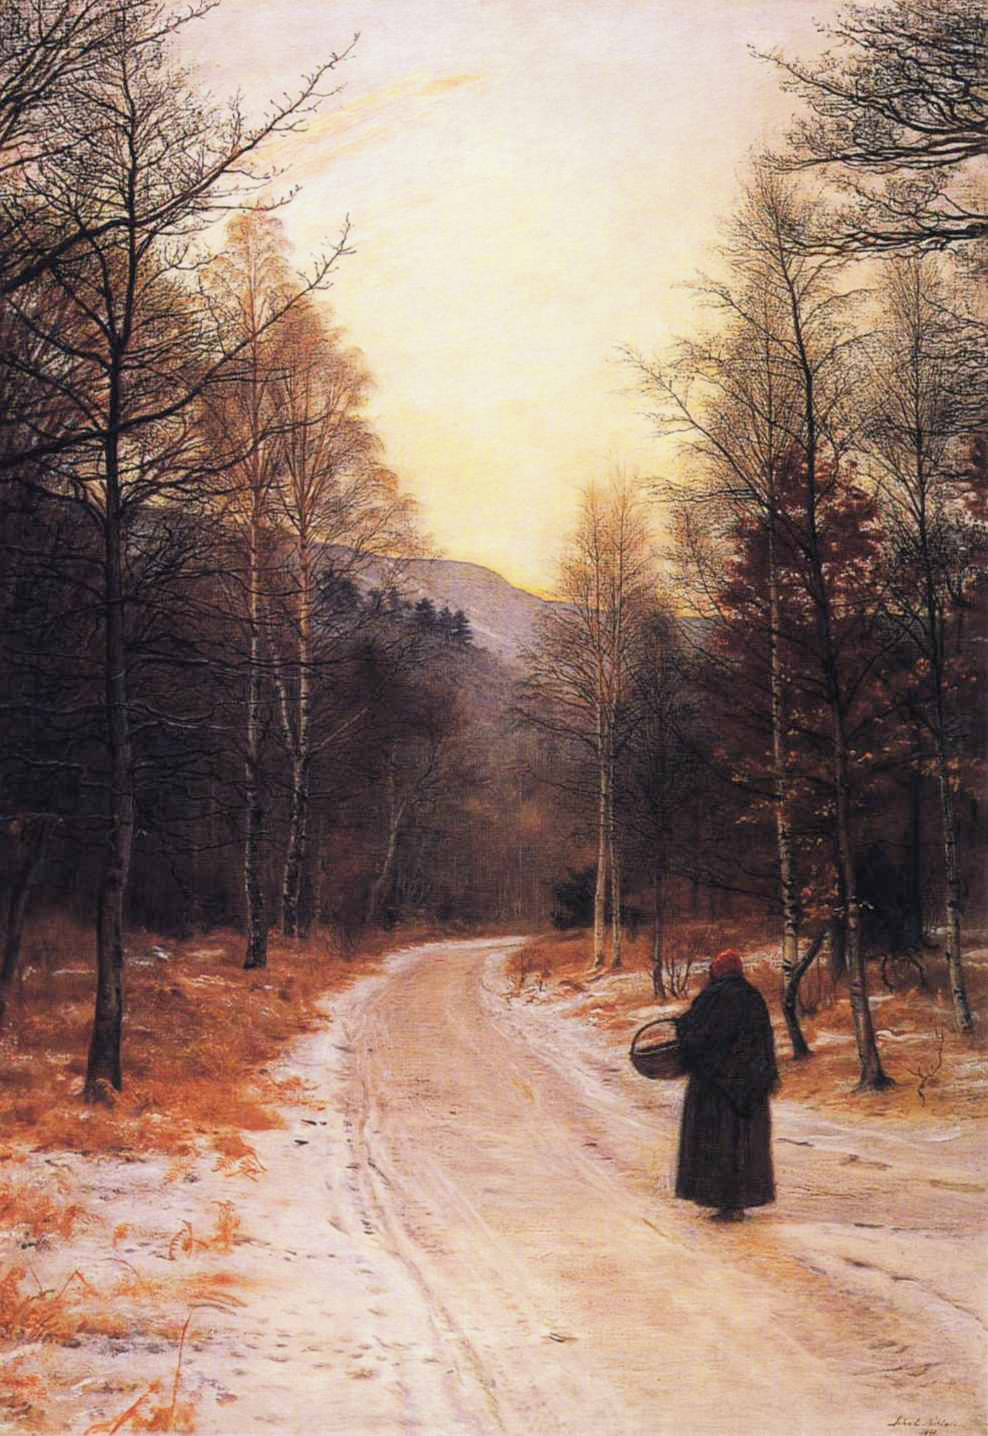 https://i1.wp.com/upload.wikimedia.org/wikipedia/commons/5/52/John_Everett_Millais_-_Glen_Birnam.JPG